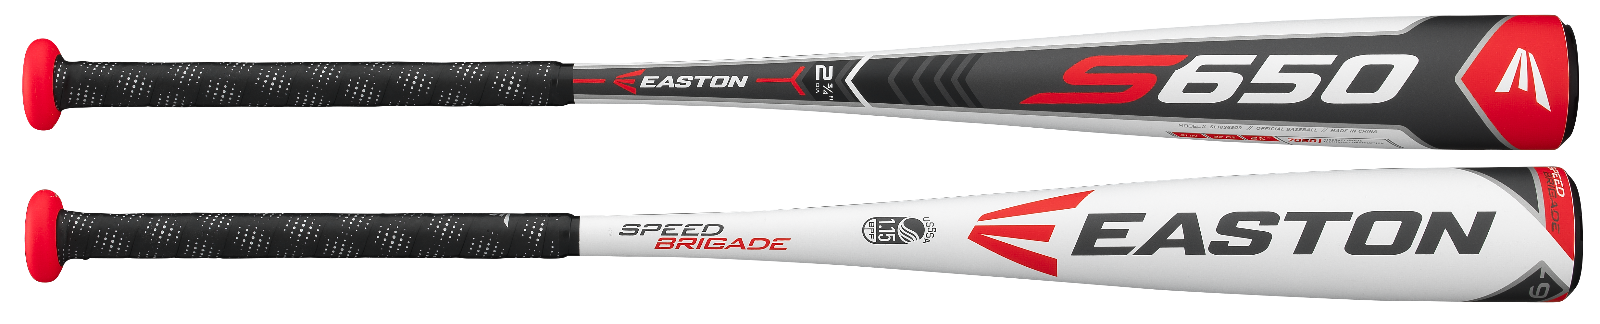 2018 Easton S650 Youth -9 29